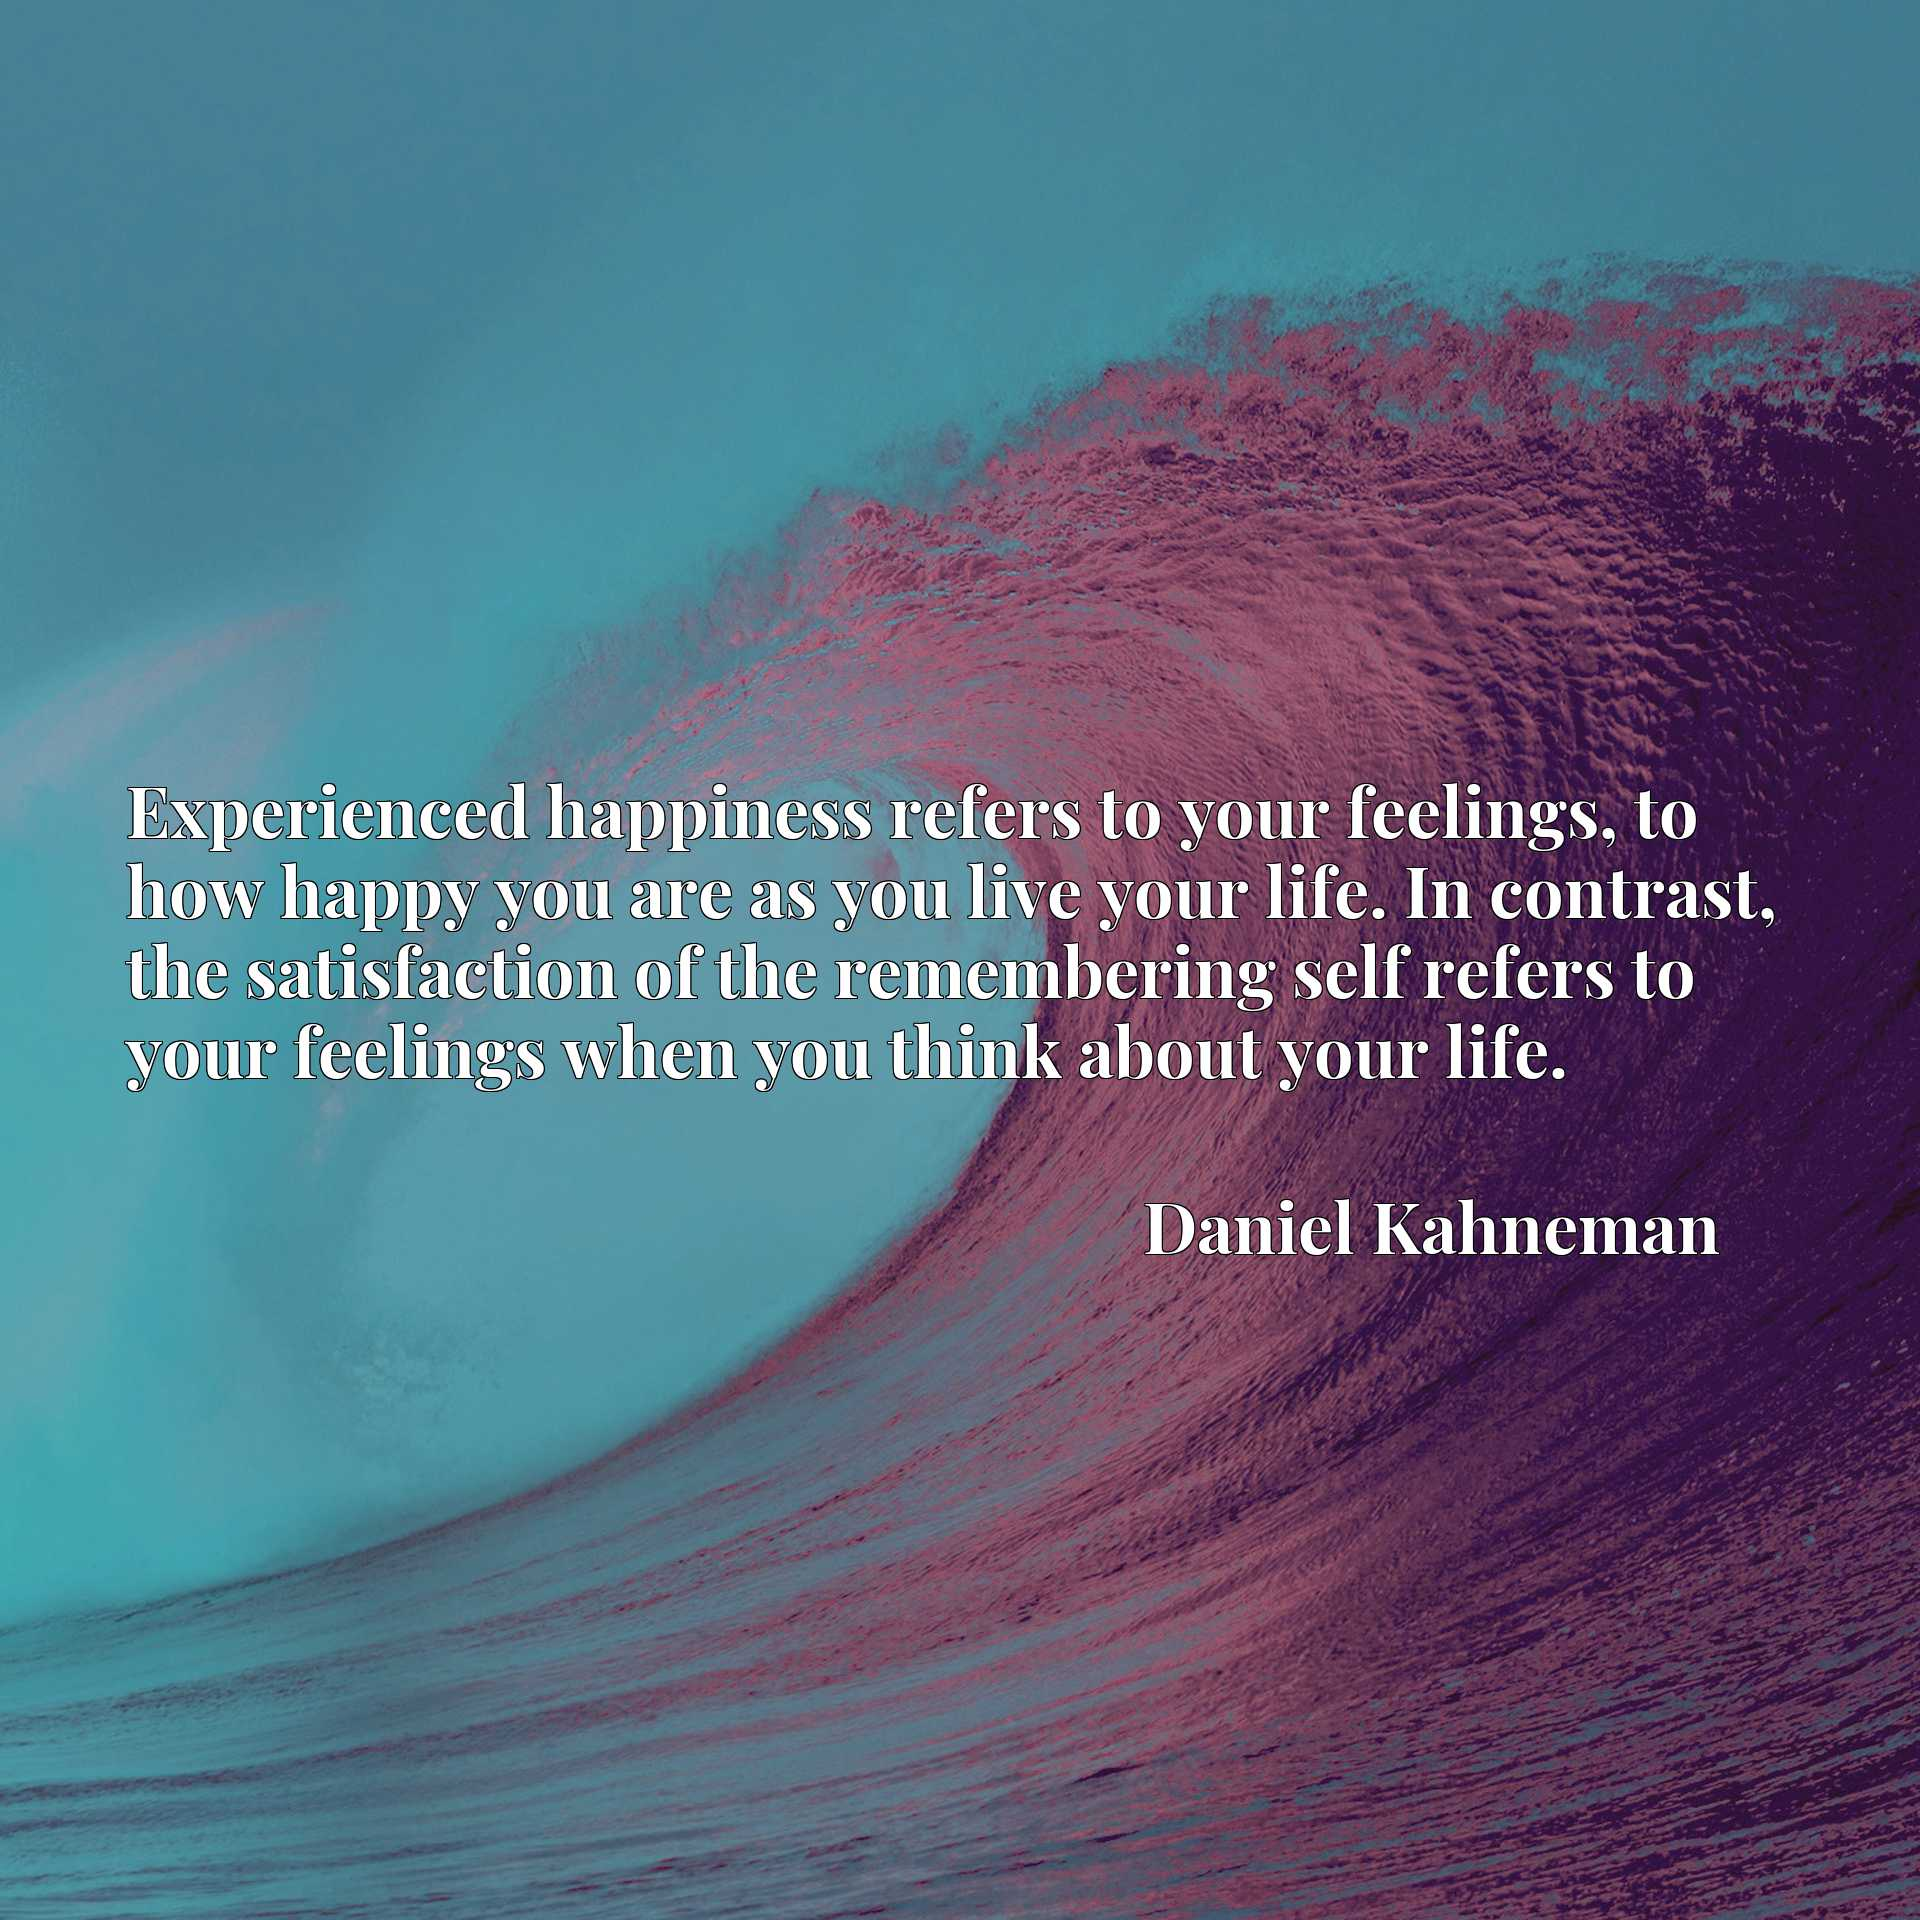 Experienced happiness refers to your feelings, to how happy you are as you live your life. In contrast, the satisfaction of the remembering self refers to your feelings when you think about your life.